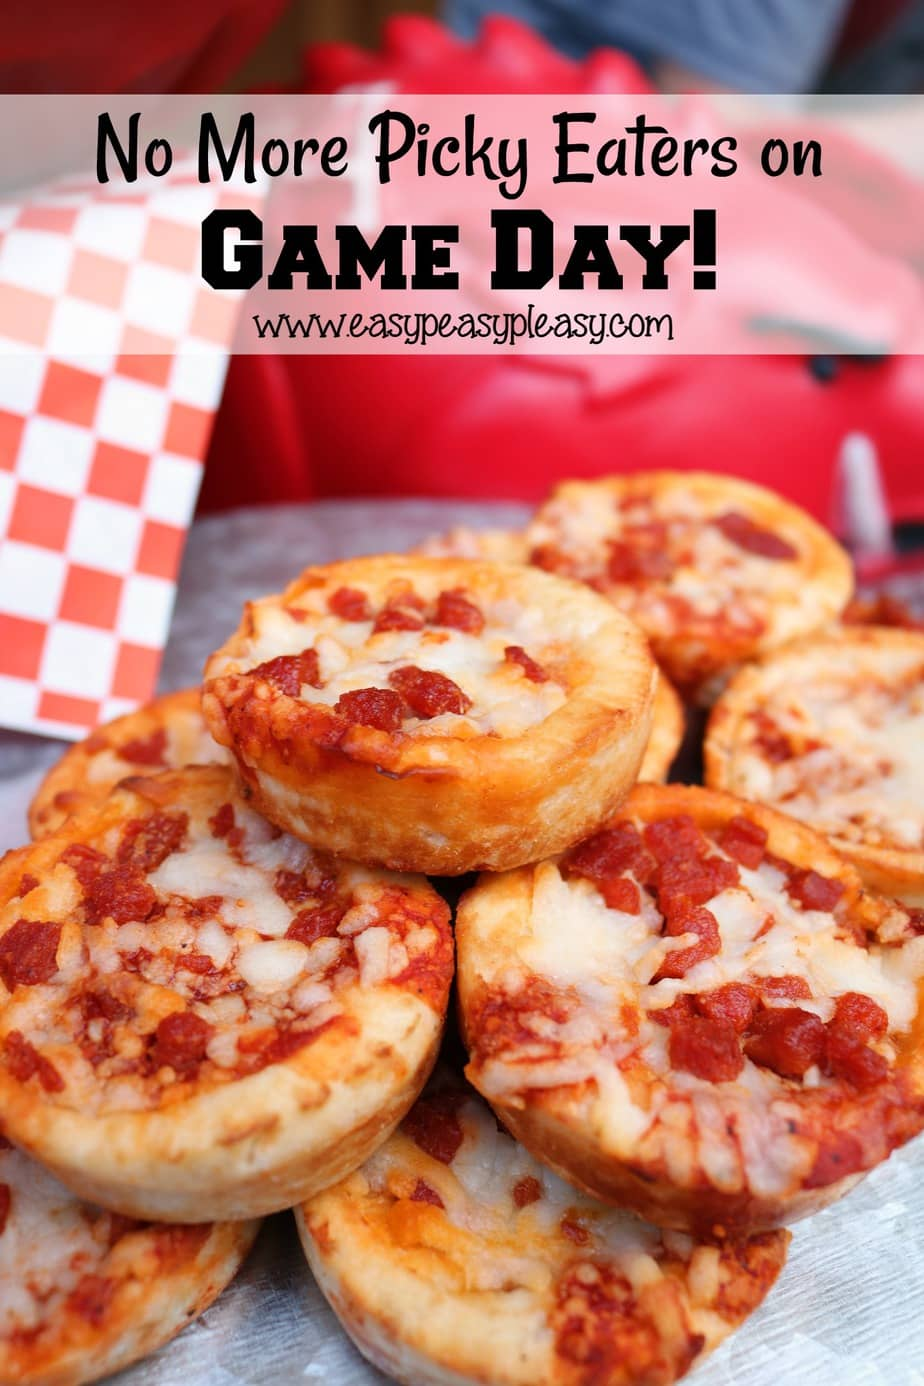 No need to worry about kids who are picky eaters on game day!